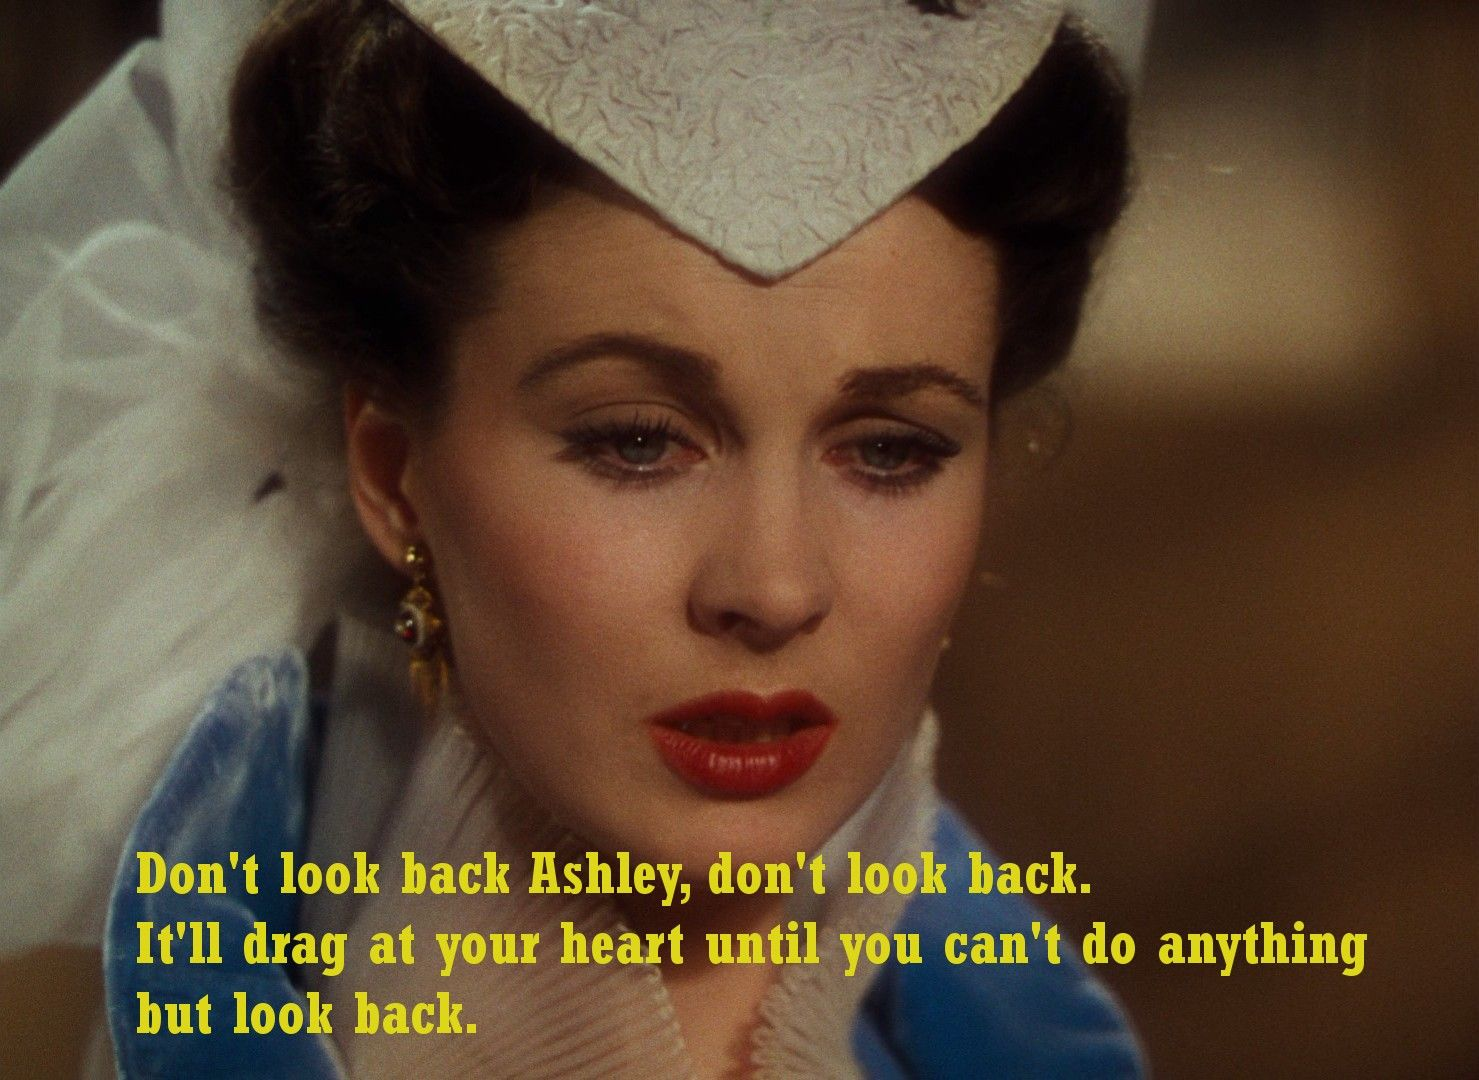 Don T Look Back Ashley Don T Look Back It Ll Drag At Your Heart Until You Can T Do Anything But Look Back Sc Gone With The Wind Wind Movie Scarlett O Hara